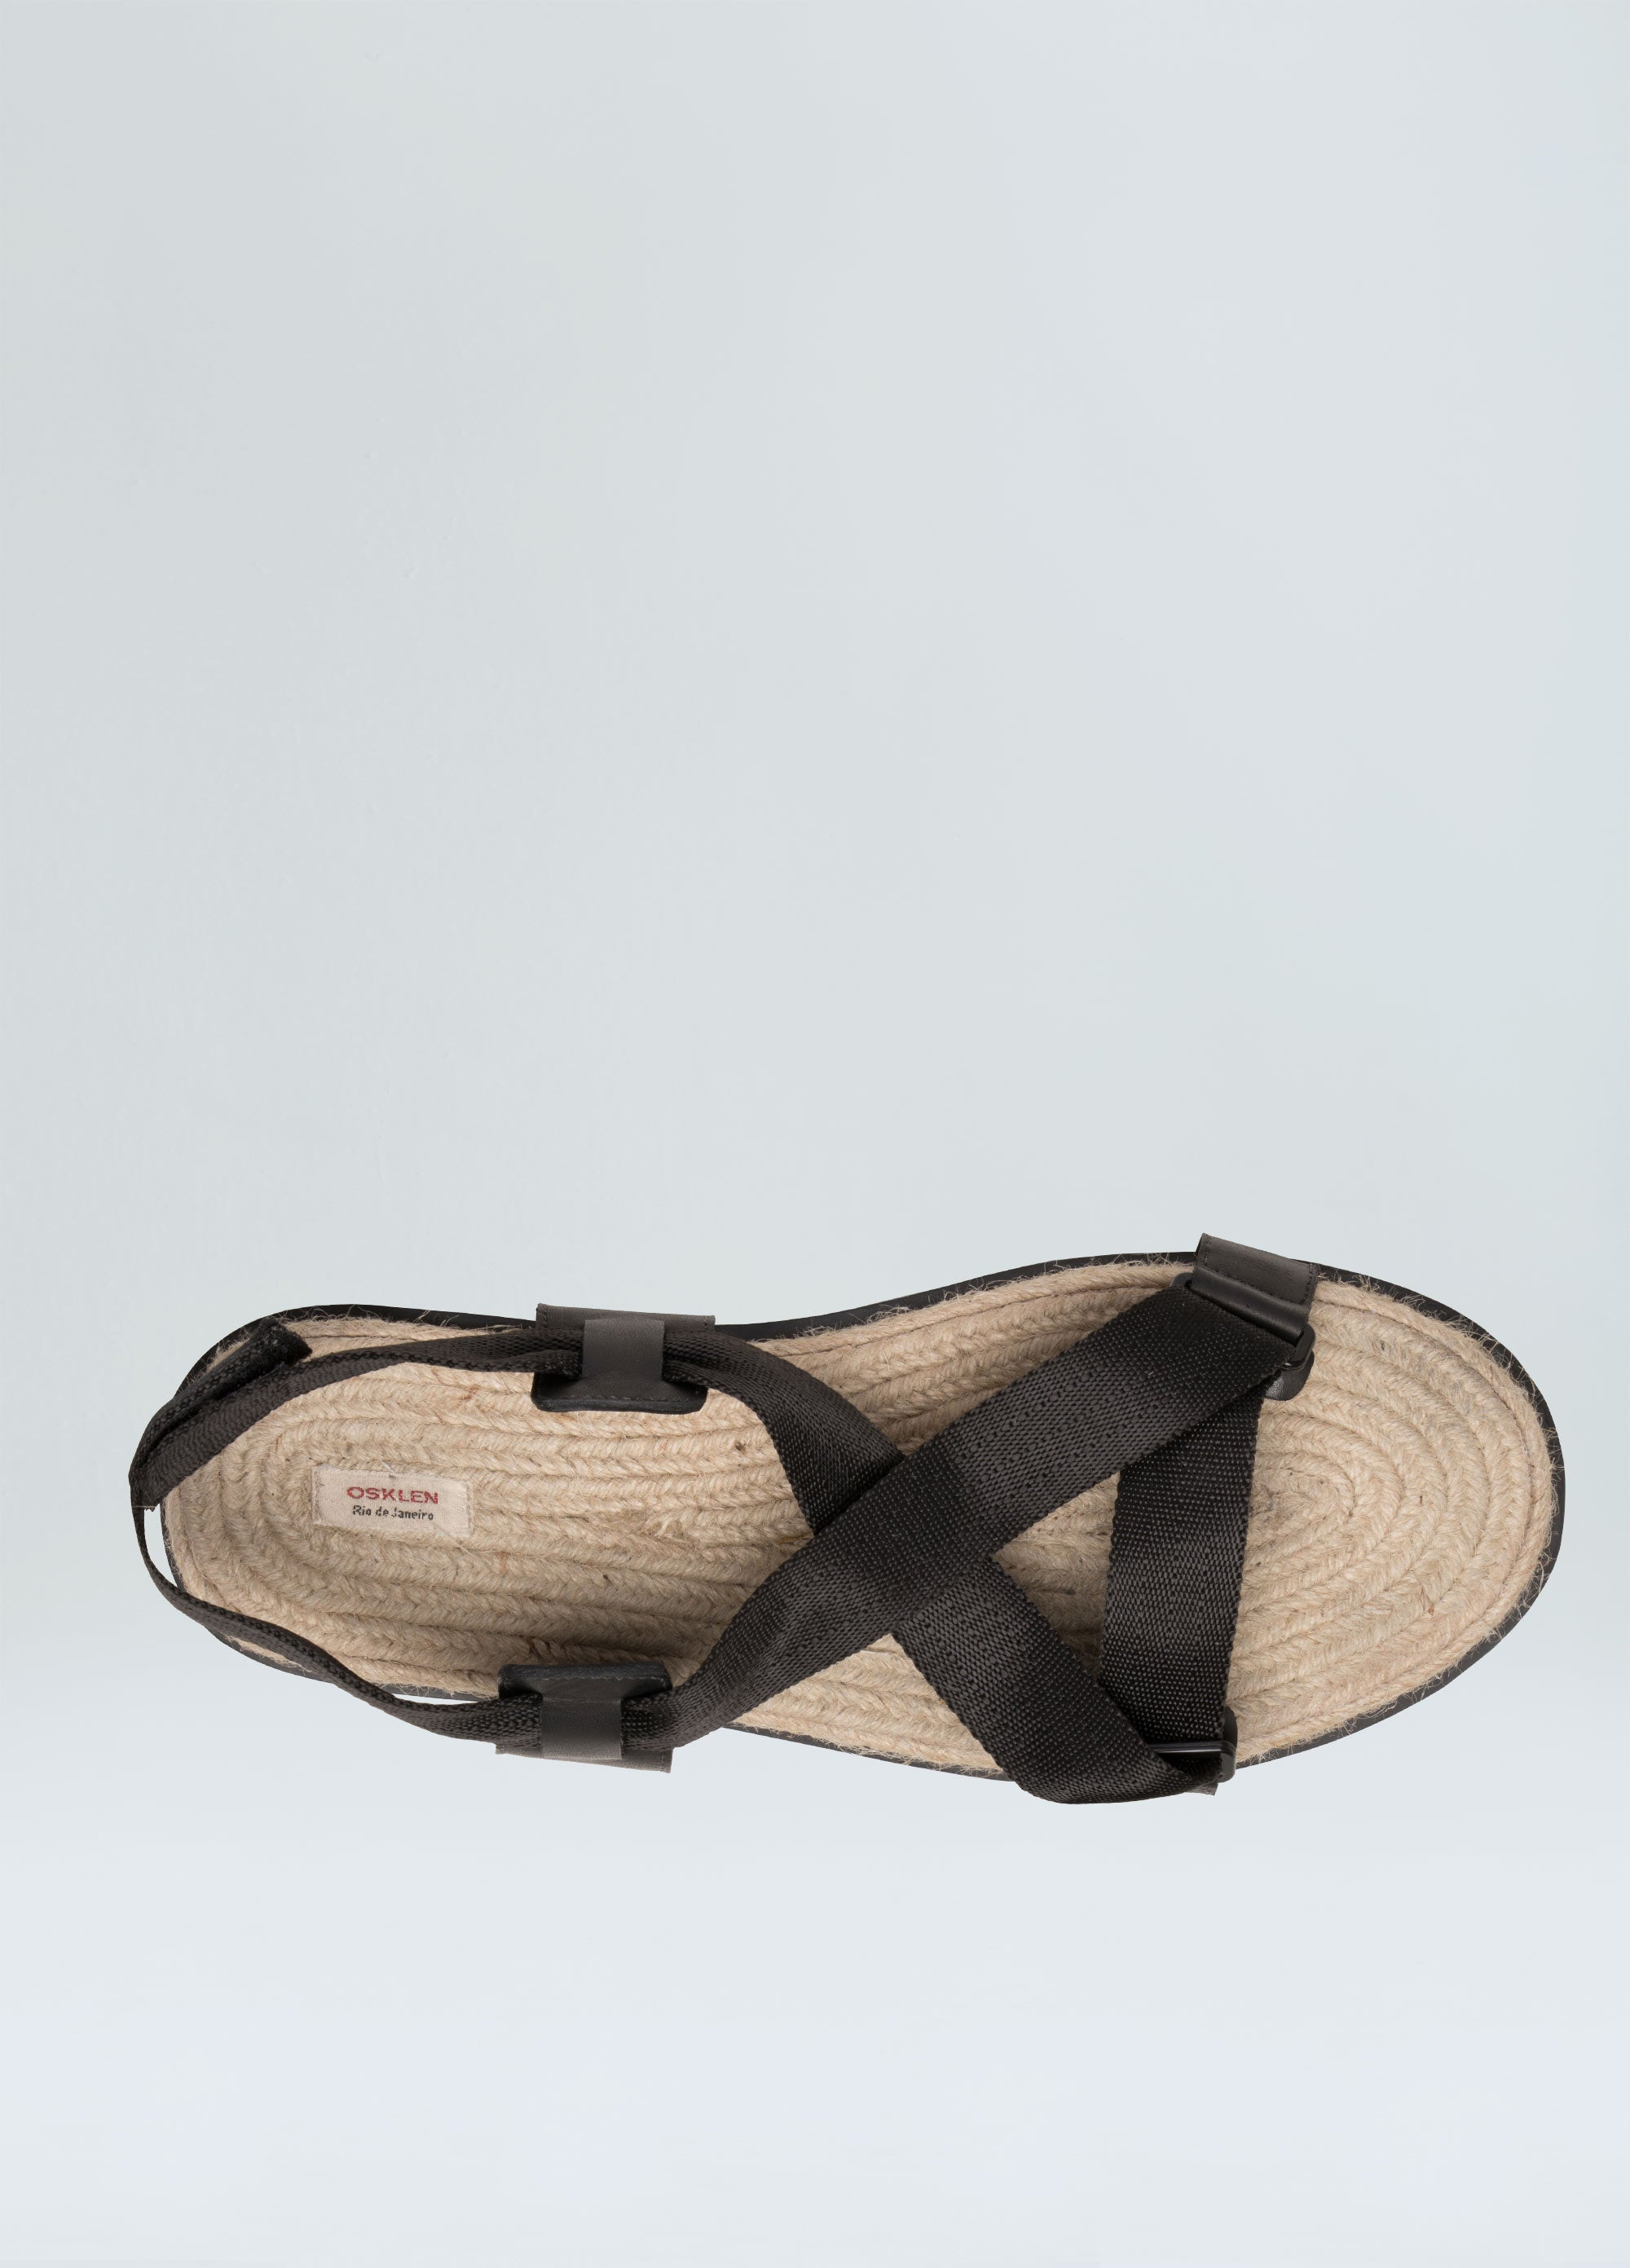 Ribbon and Rope Sandals